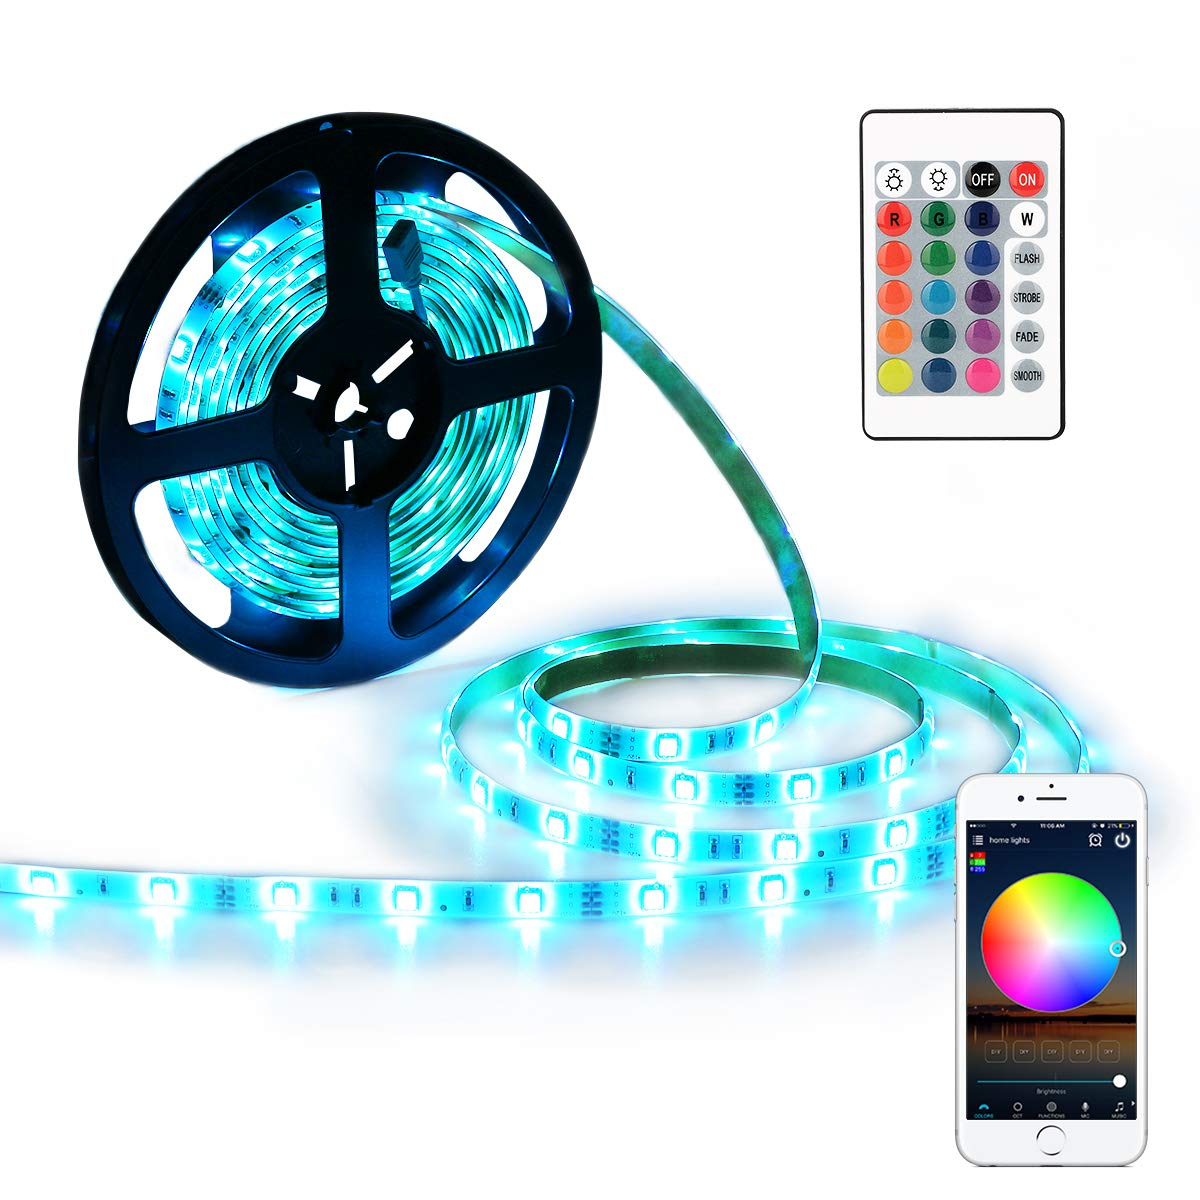 YiHong LED Light Strip RGB Strip Lights LED Tape Lights Compatible with Alexa and Google Home 150 5050 SMD LEDs Smart WiFi Strip Lights by YIHONG